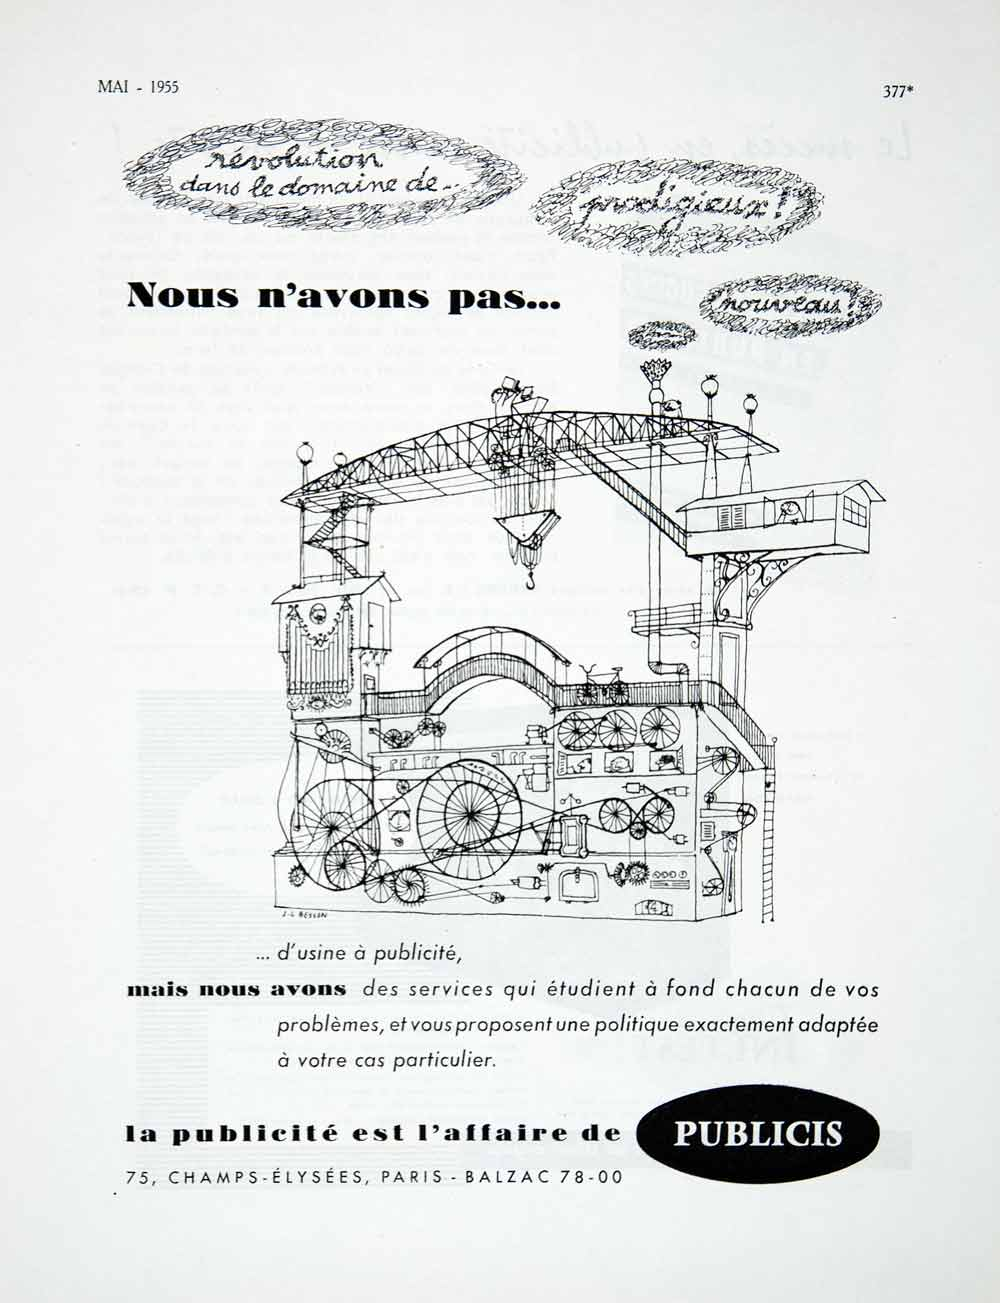 1955 Ad Publicis Advertising French France Champs-Elysees Paris Machine VEN2